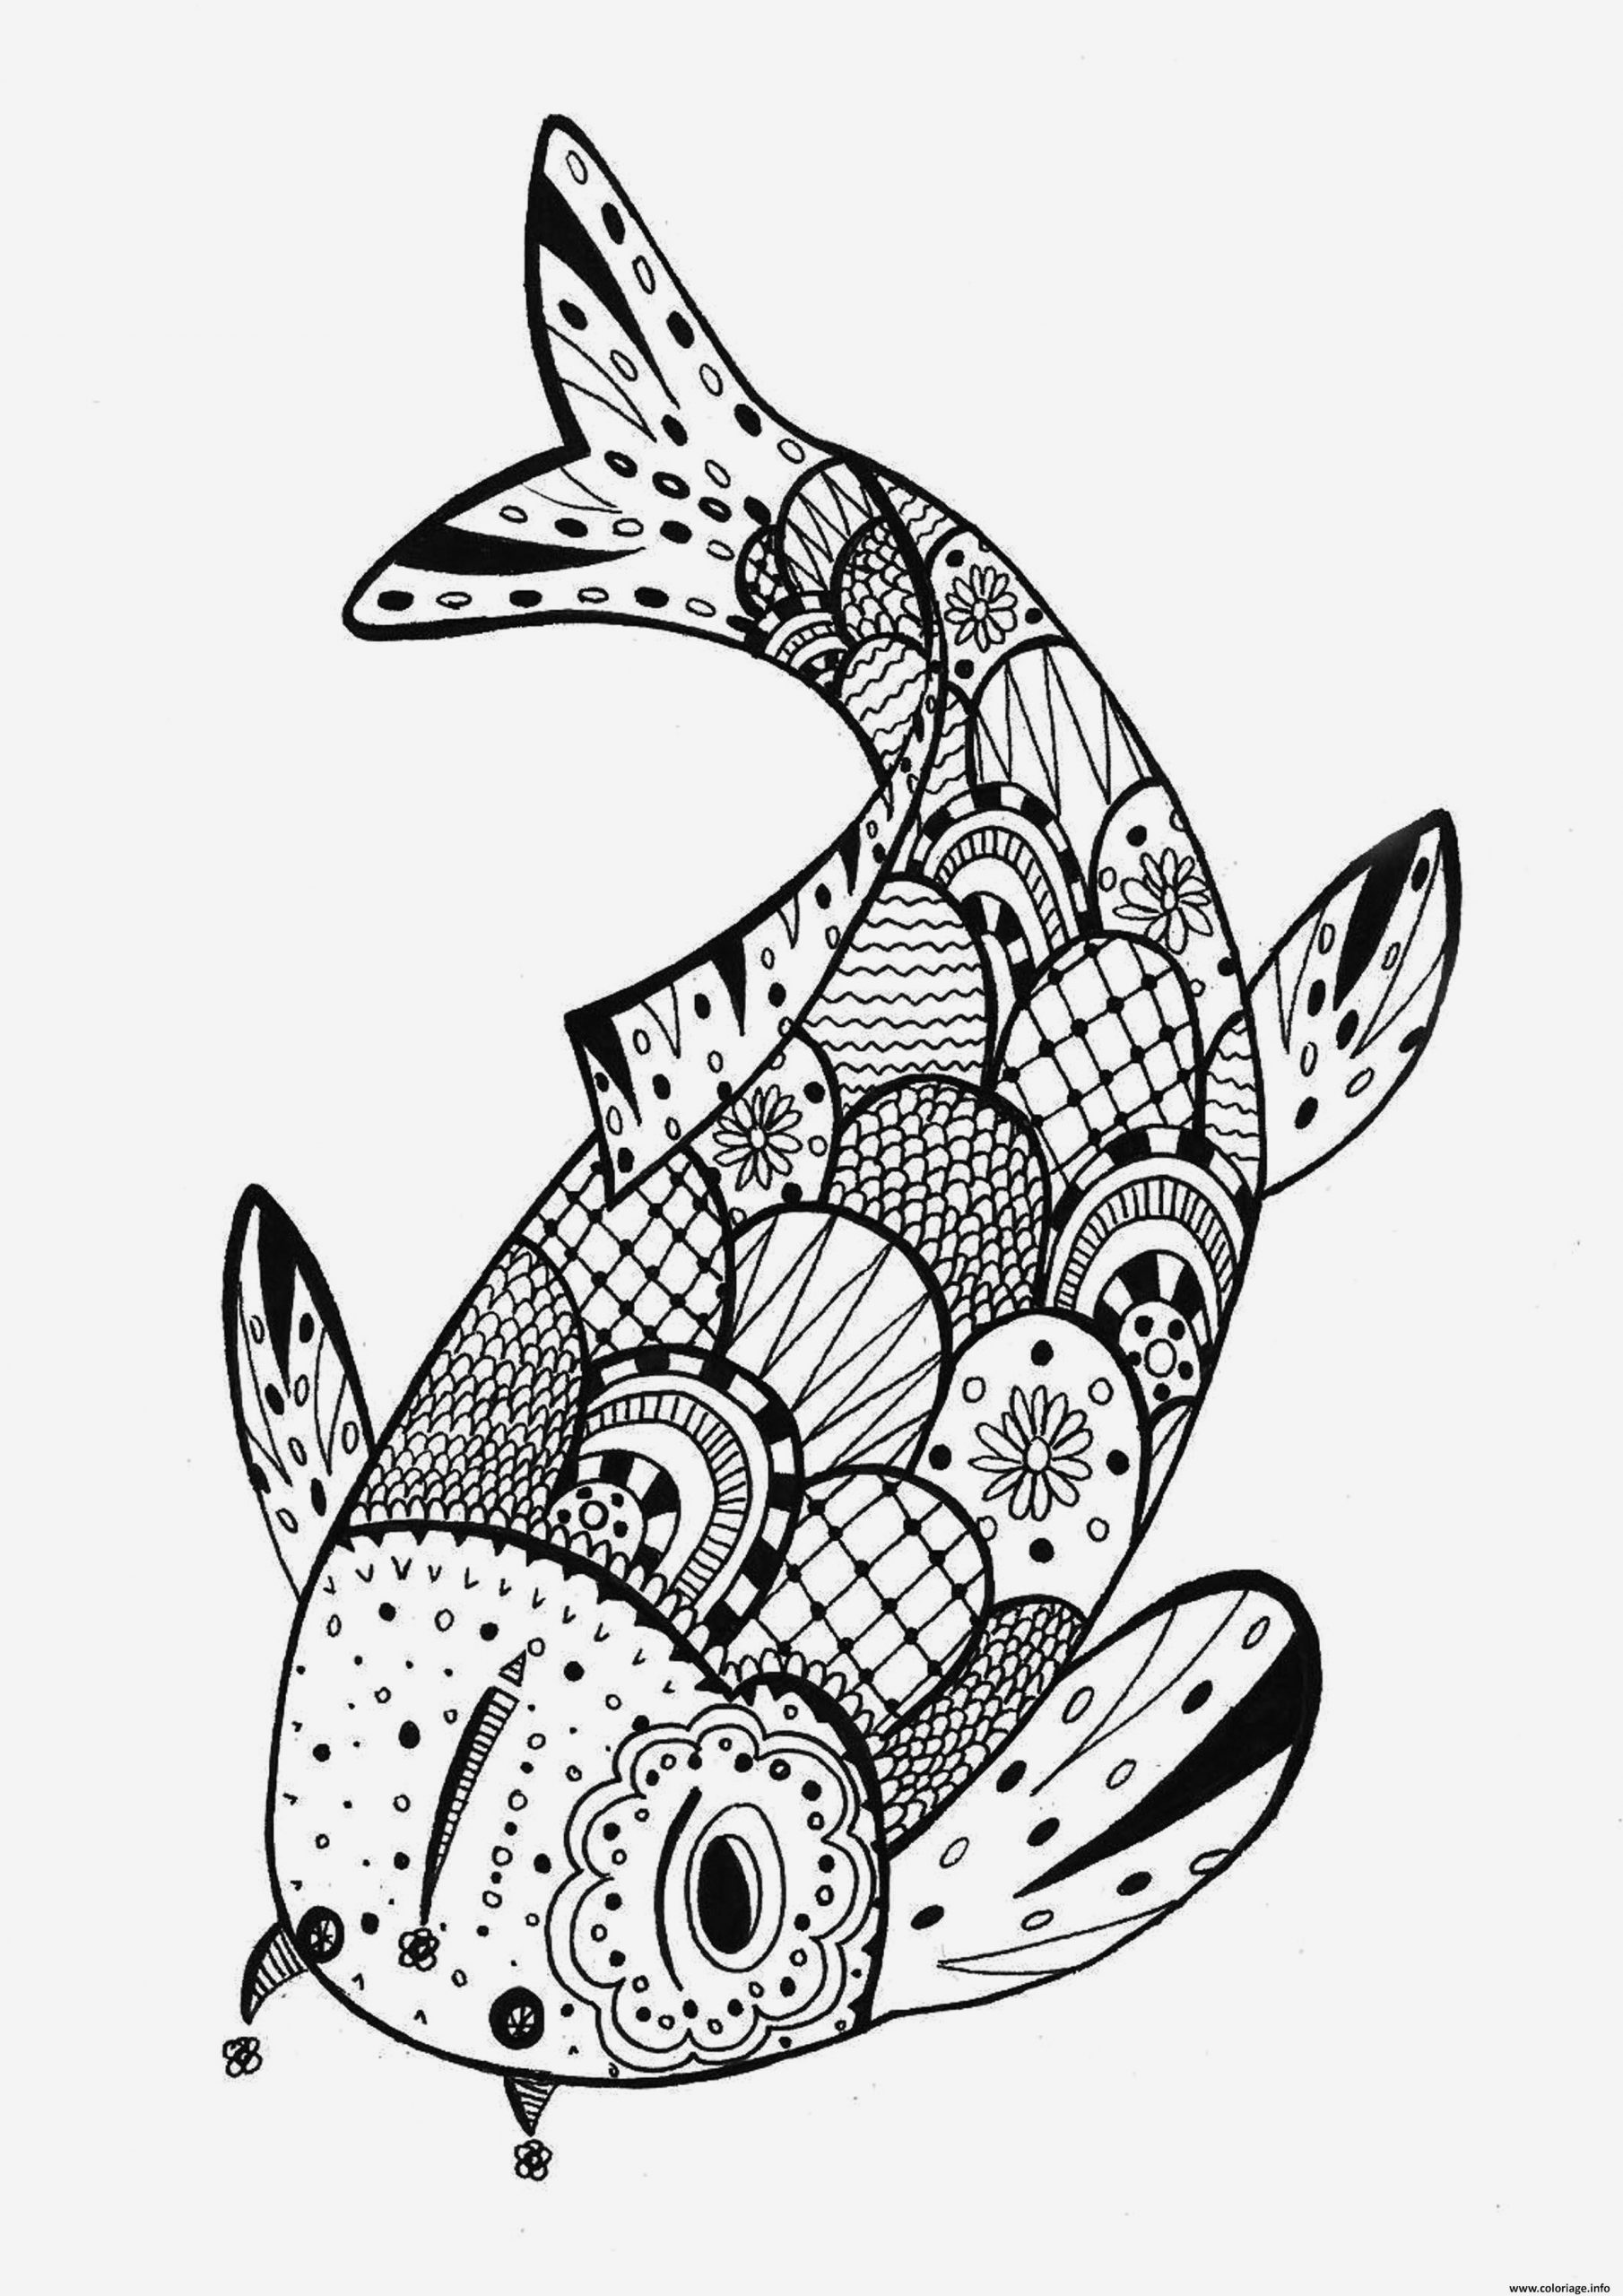 Poisson Avril Coloriage Luxury Coloriage Poisson Davril Mandala Dessin Of Poisson Avril Coloriage